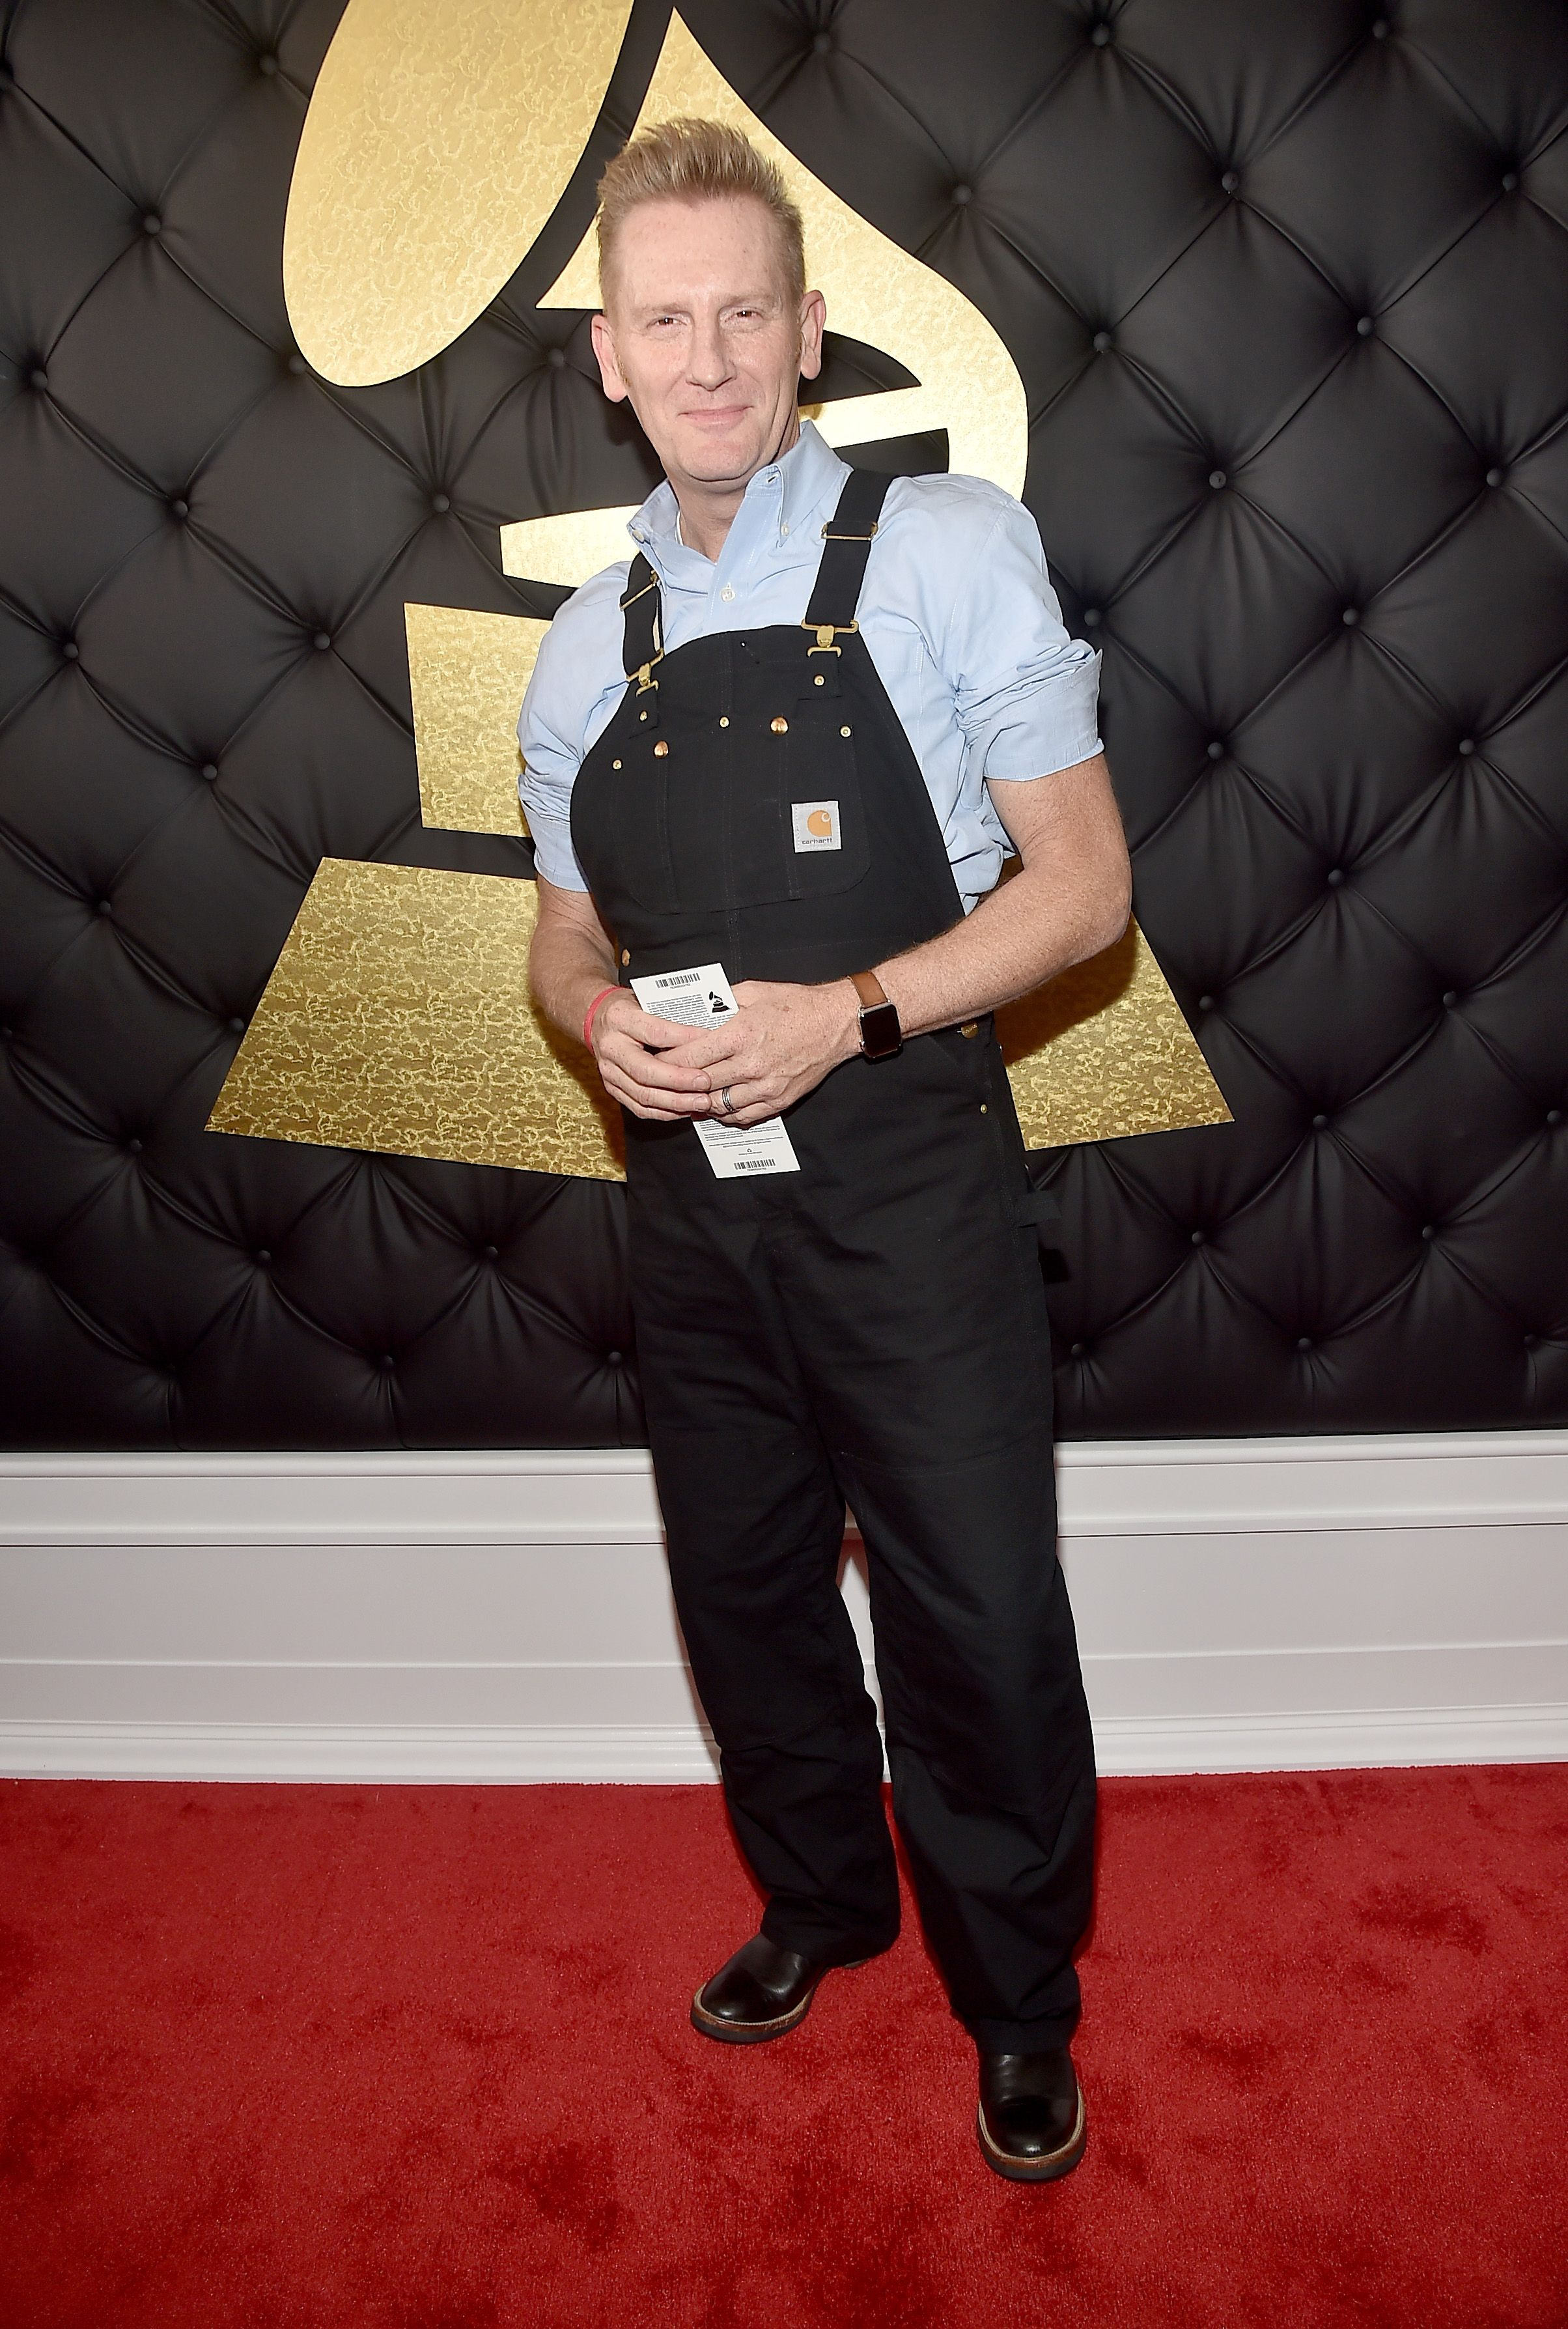 Musician Rory Lee Feek of Joey + Rory at The 59th GRAMMY Awards at STAPLES Center on February 12, 2017 | Photo: Getty Images